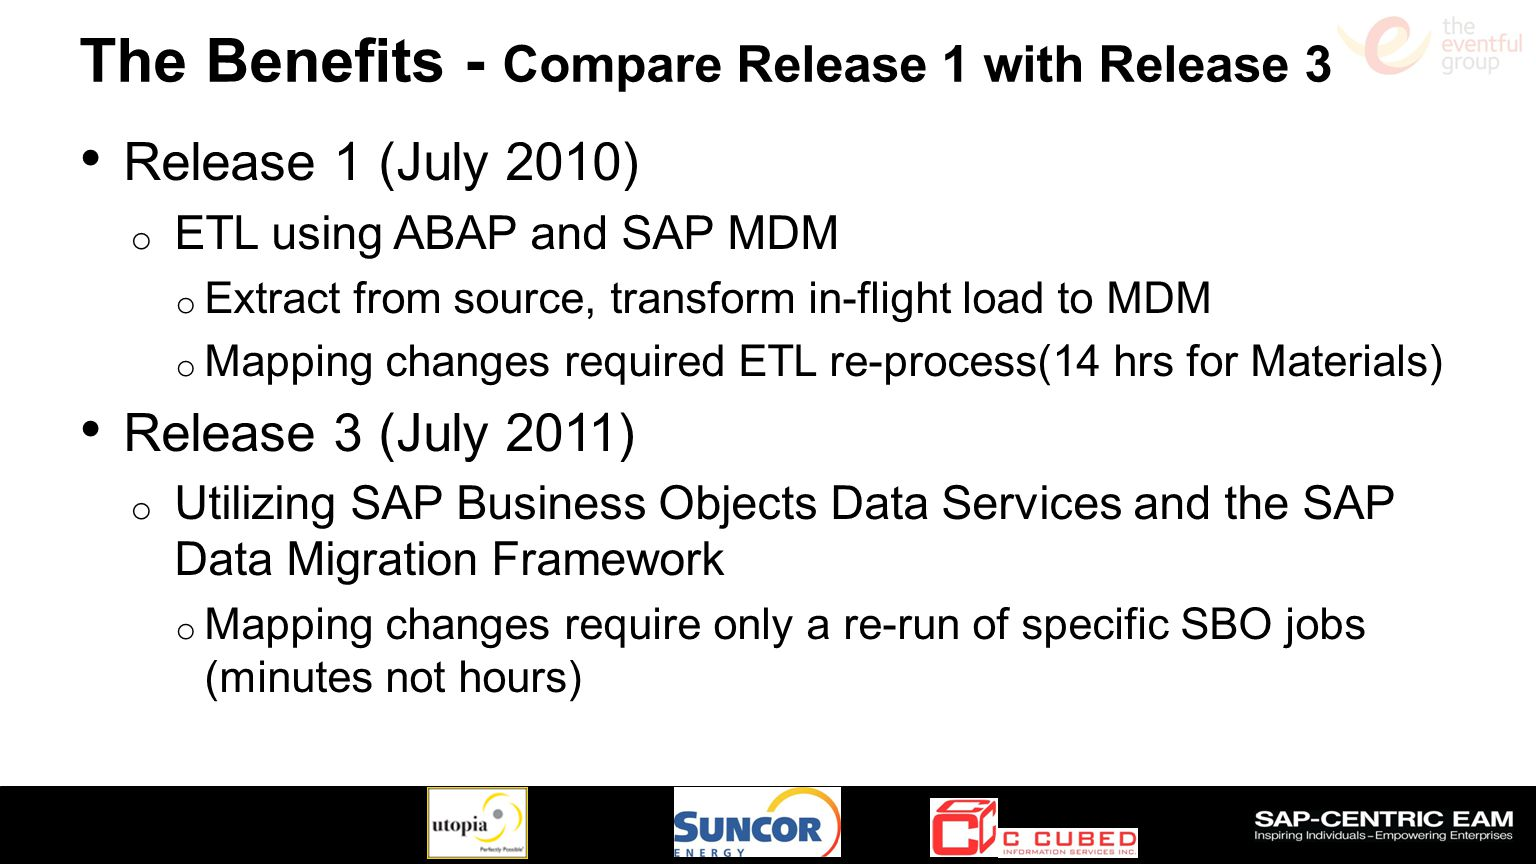 The Benefits - Compare Release 1 with Release 3